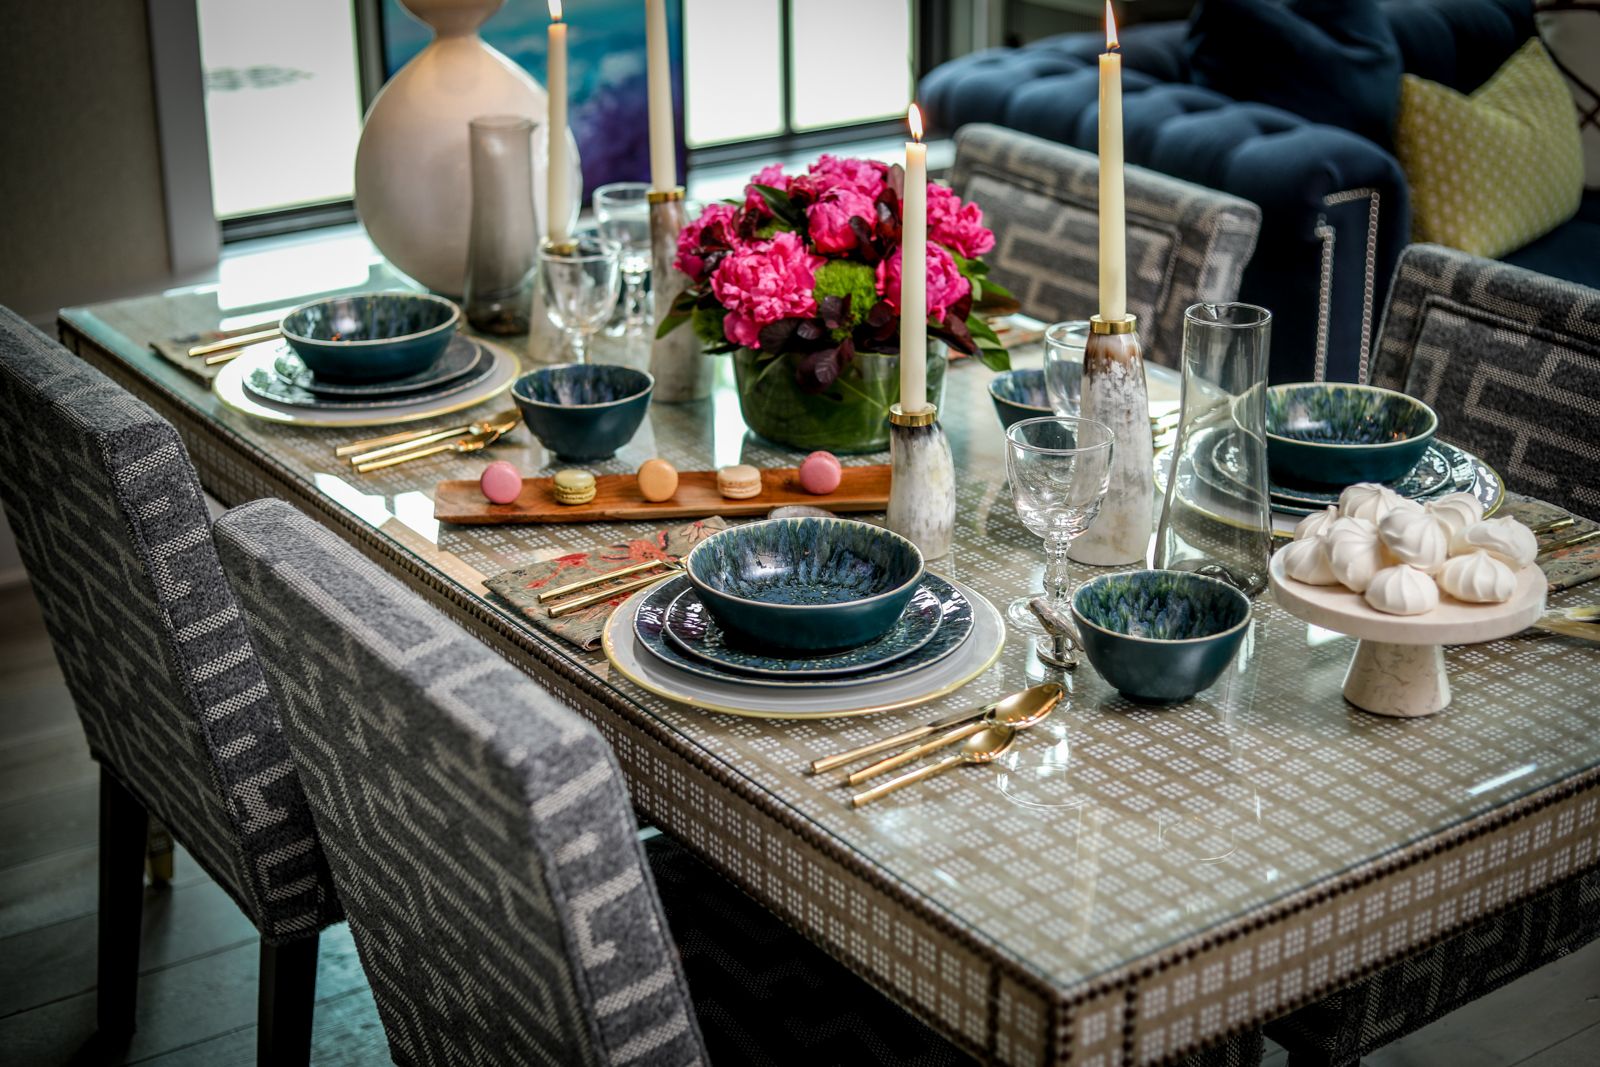 Tablescape-Modern-Textiles-Floral-Green-Gold.jpg